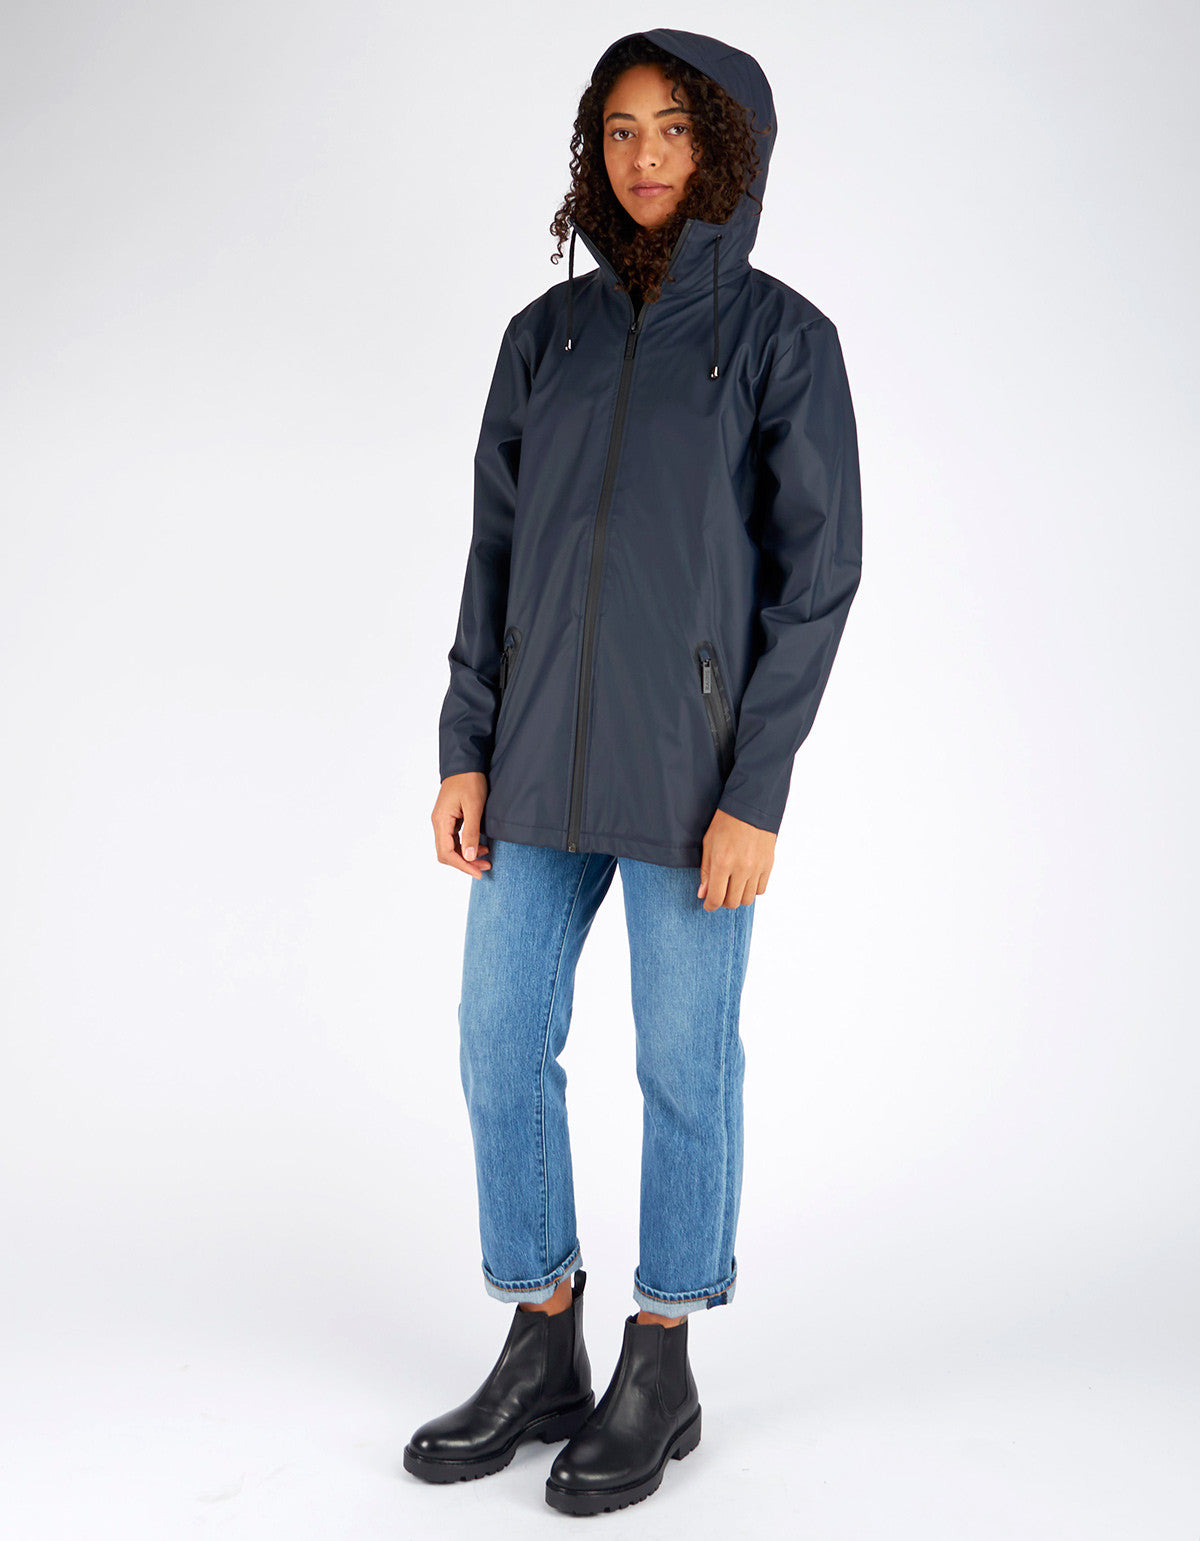 Rains Women's Breaker Jacket Black - Still Life - 7